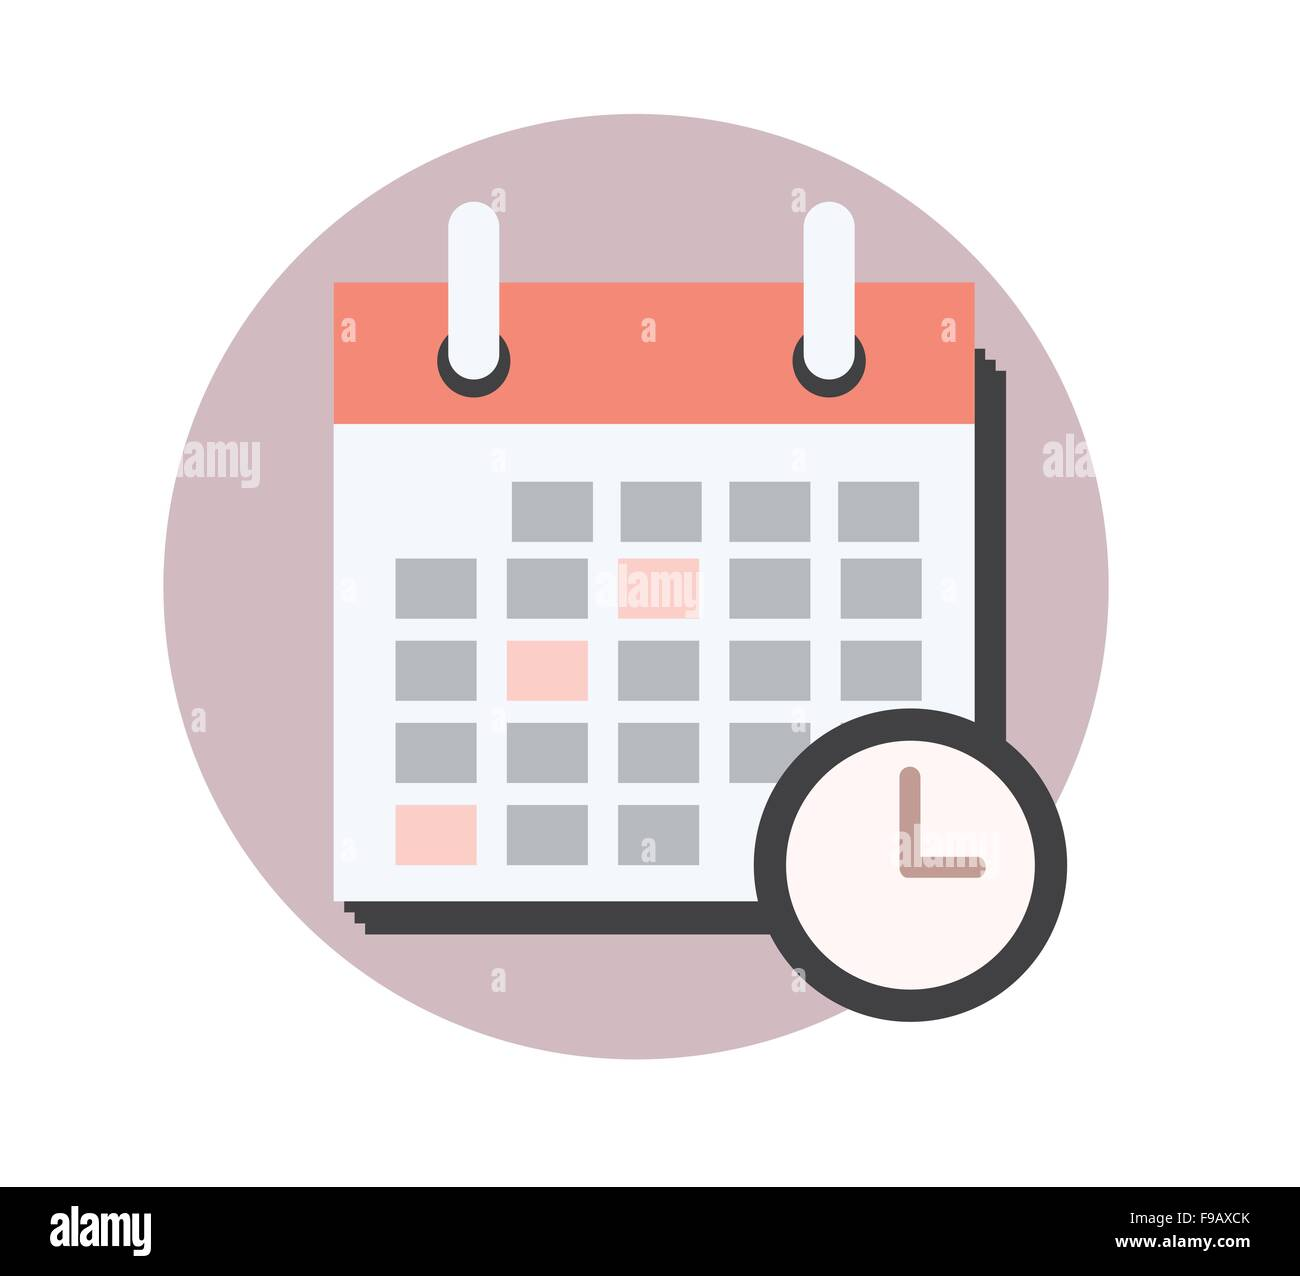 Calendario Business.Calendar Business Concept Icon Design Stock Vector Art